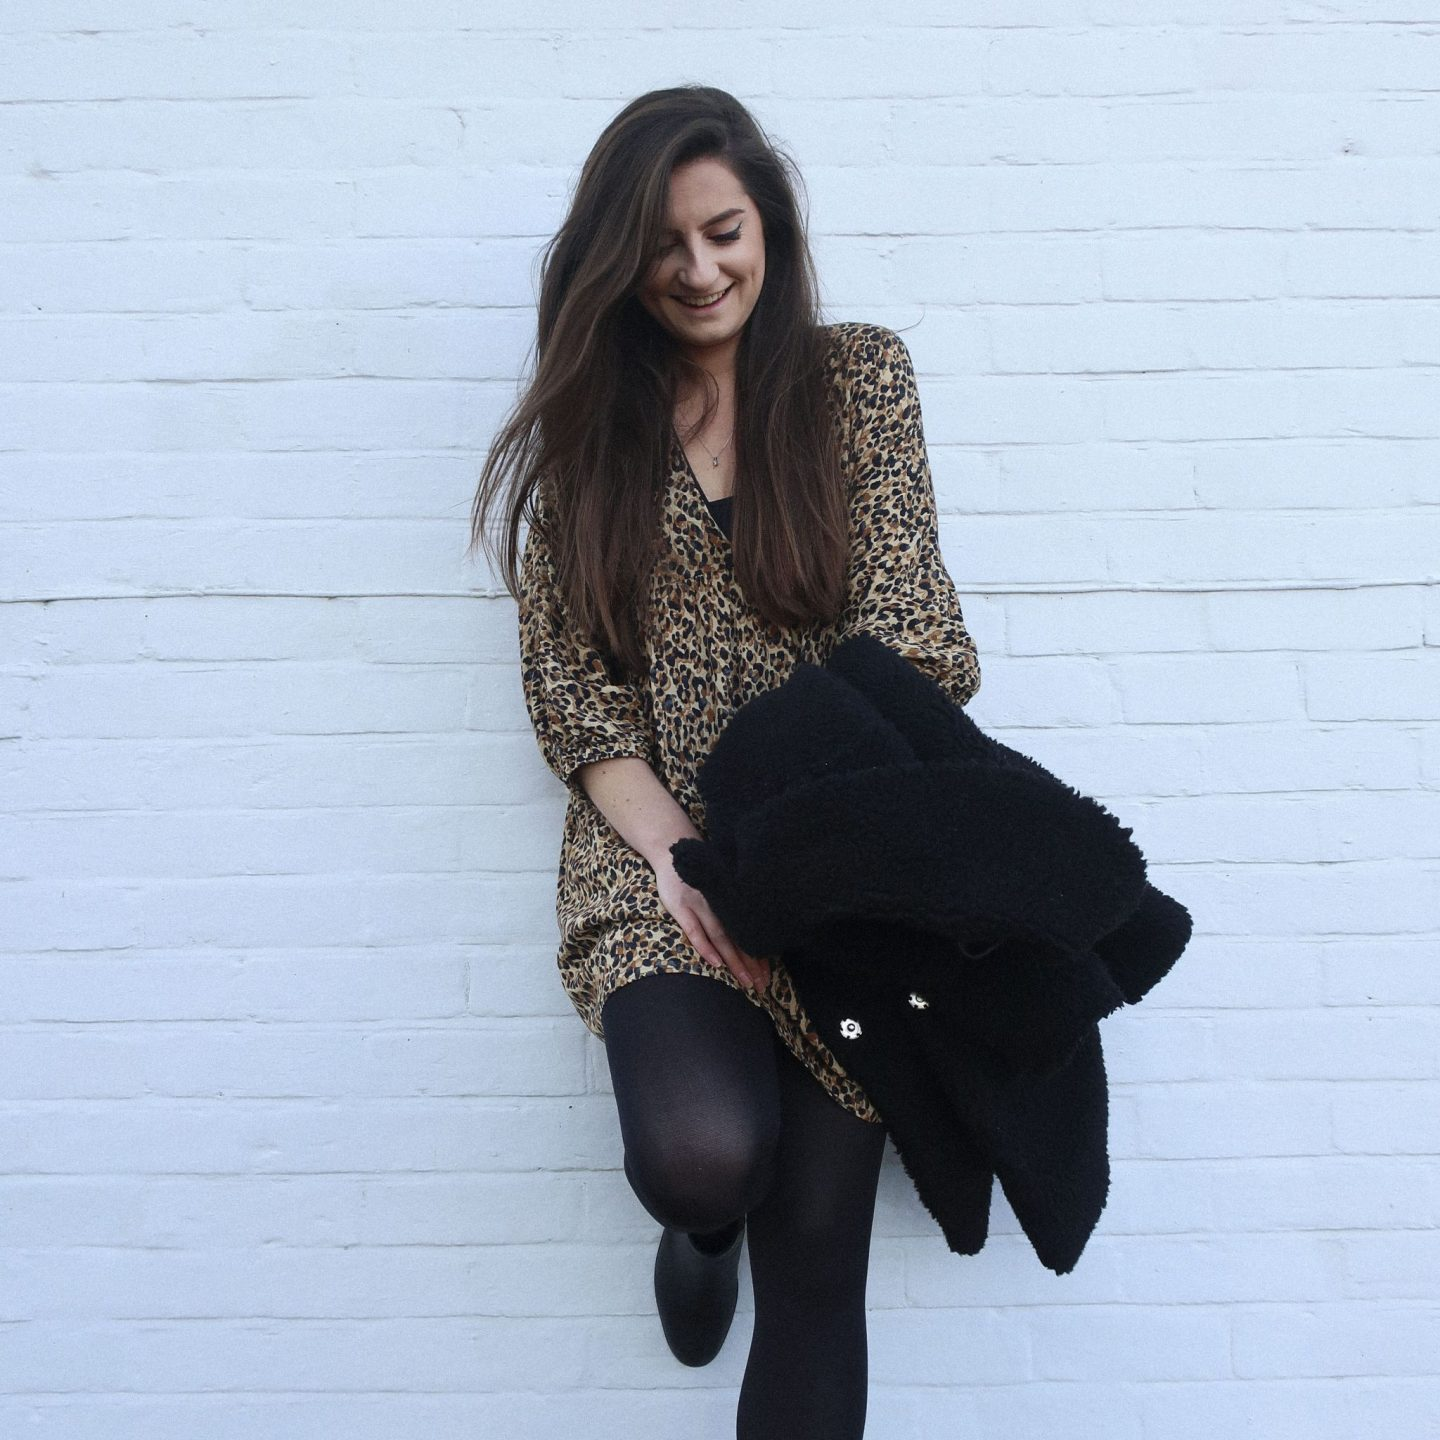 girl wearing leopard print dress smiling